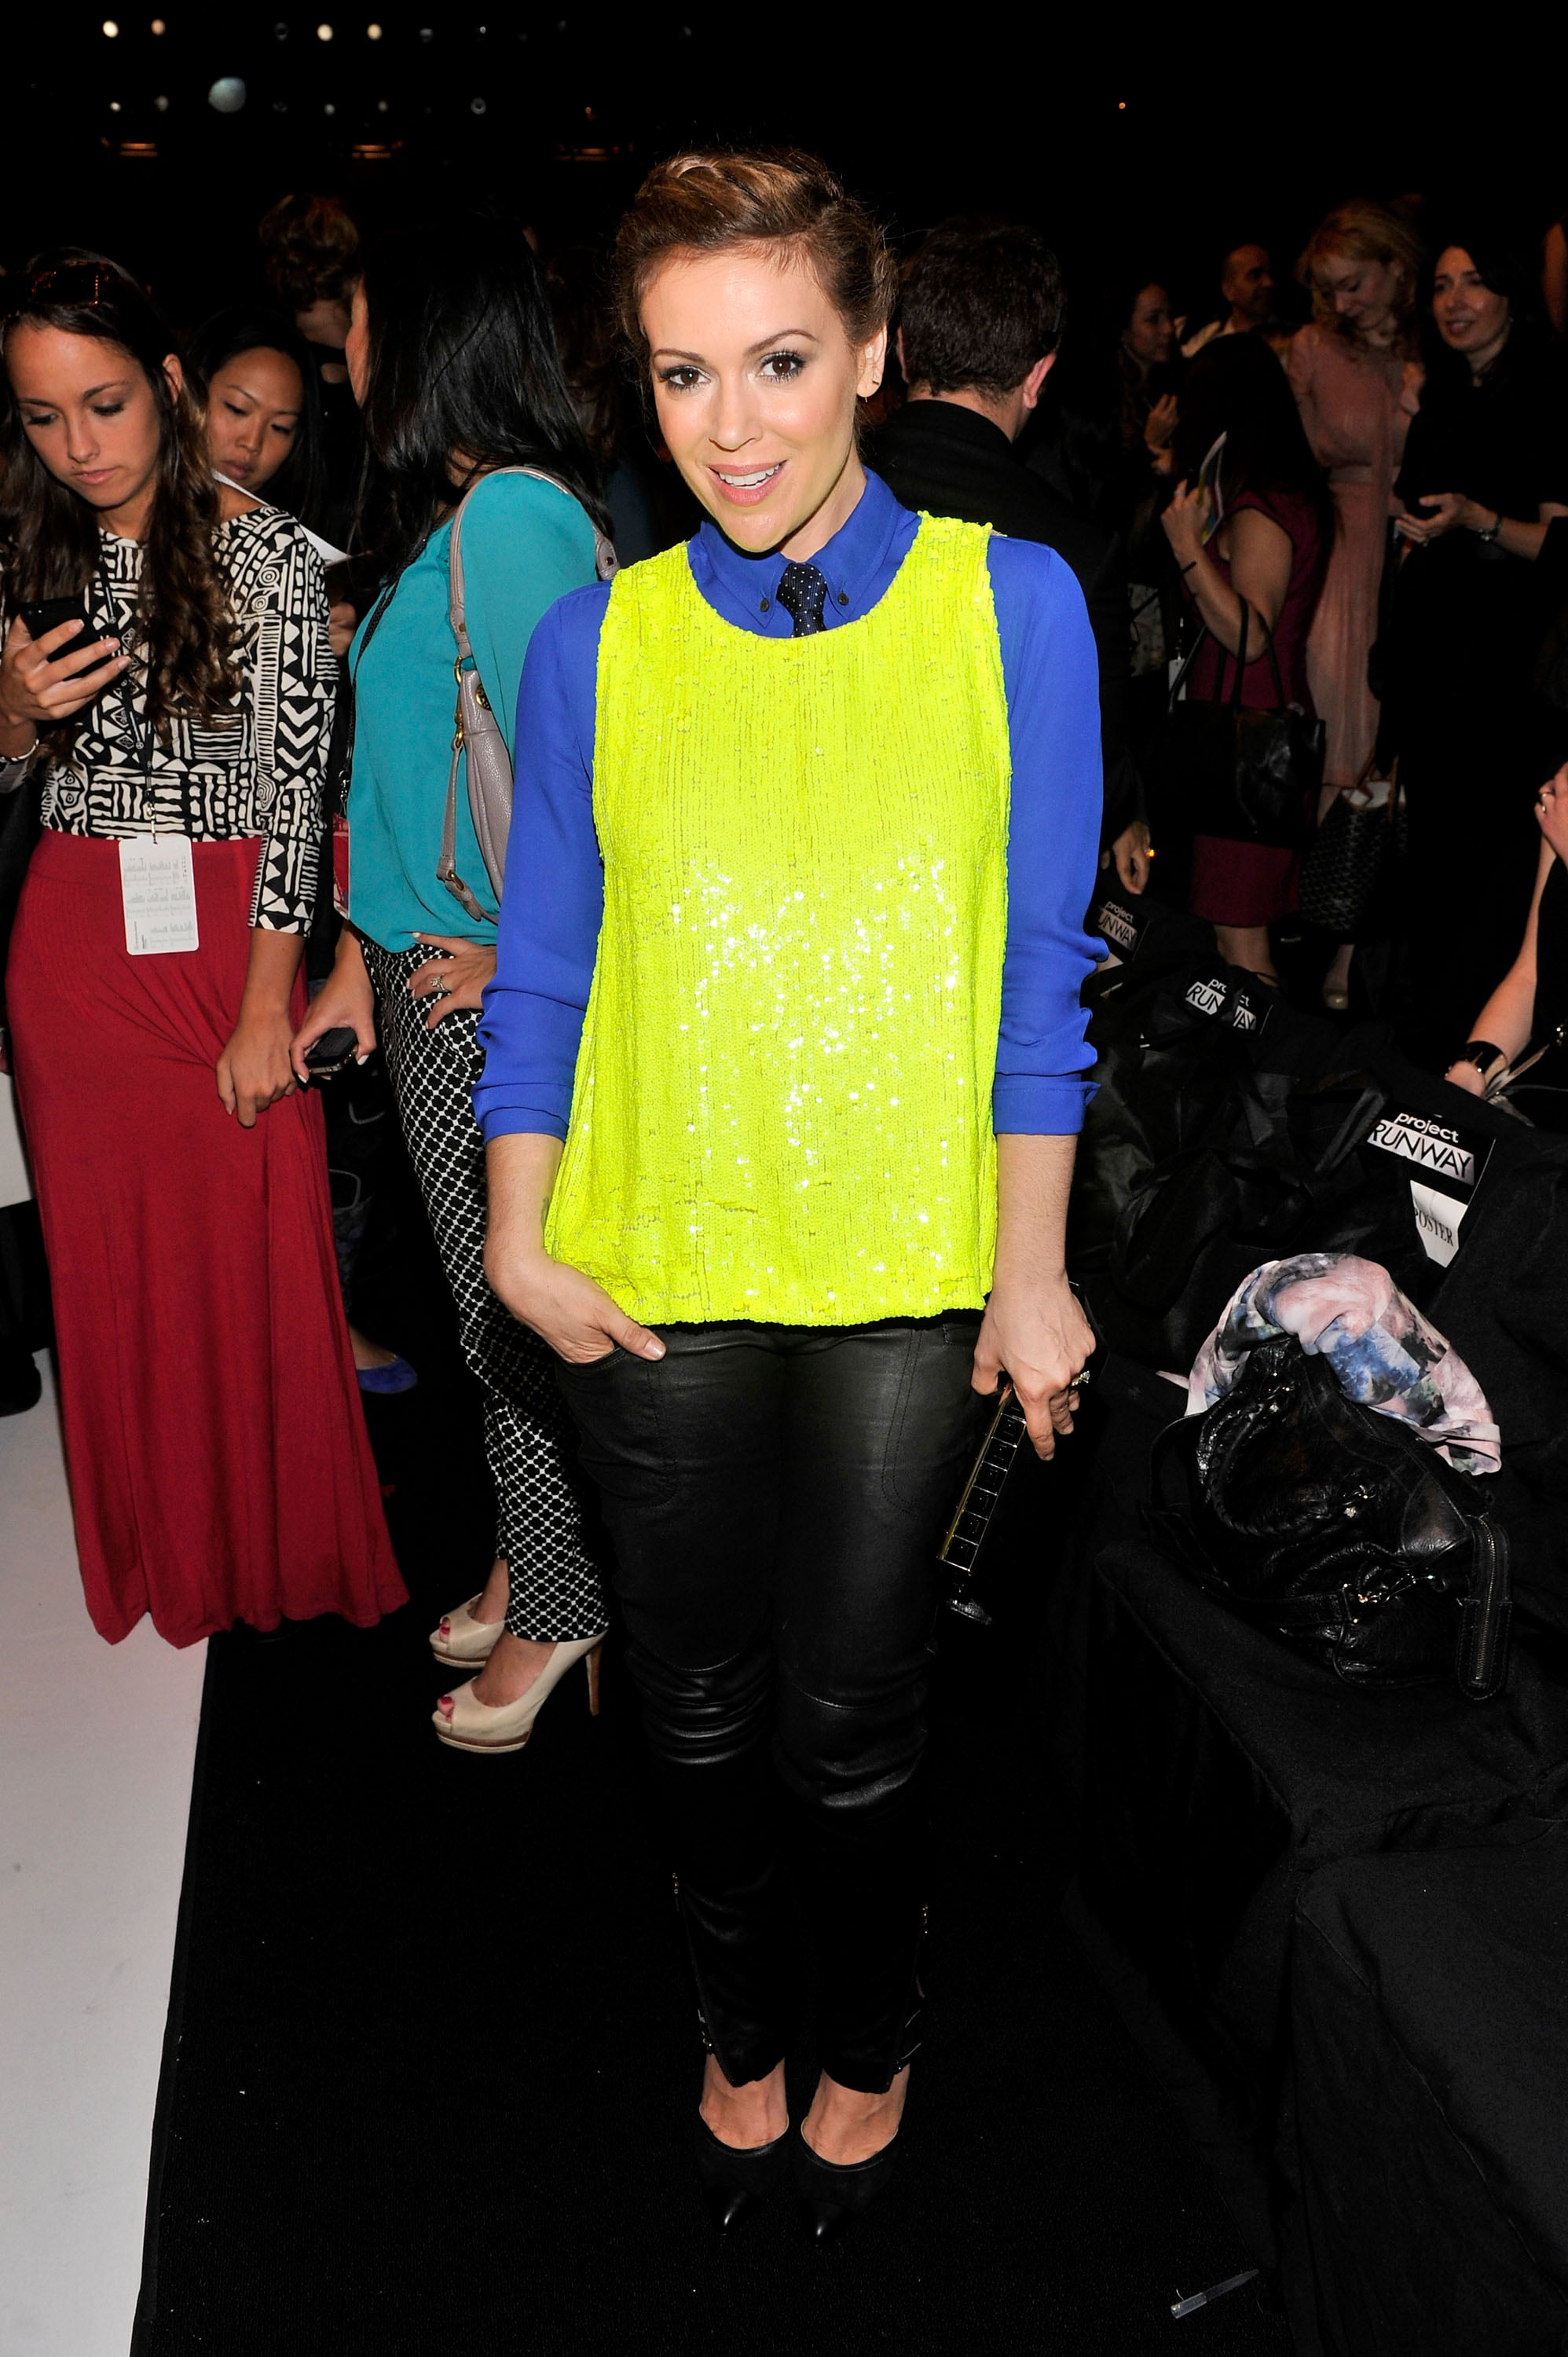 Alyssa Milano wore standout brights for the Project Runway show on Friday.